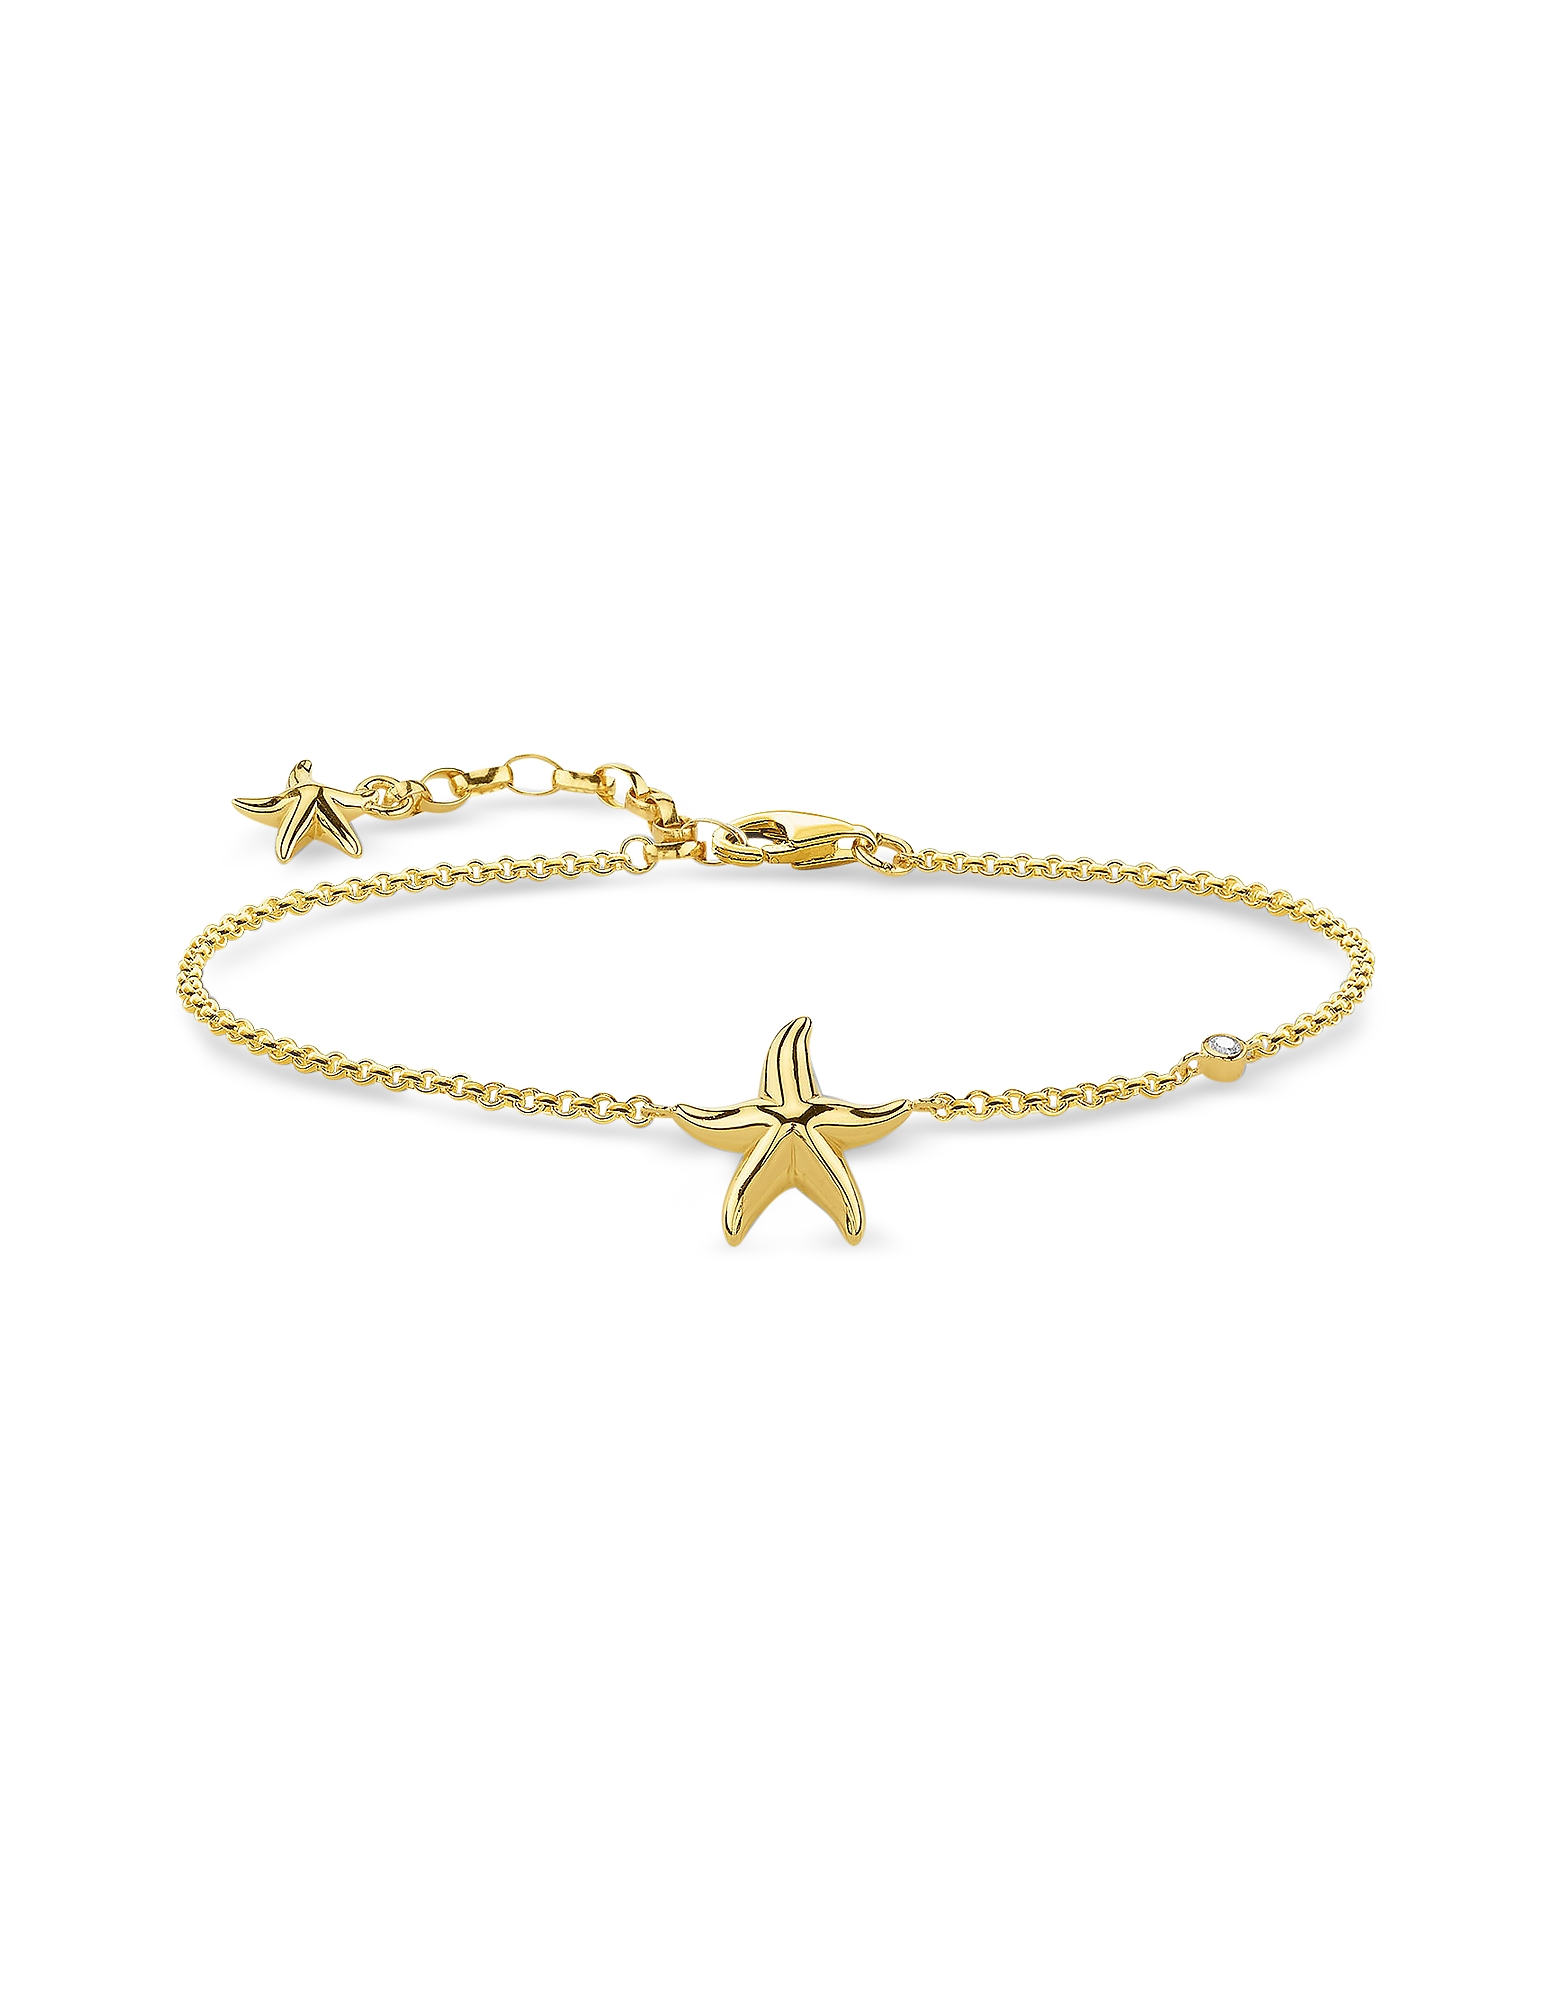 Thomas Sabo Bracelets, Gold Plated Sterling Silver Starfish Bracelet w/White Zirconia